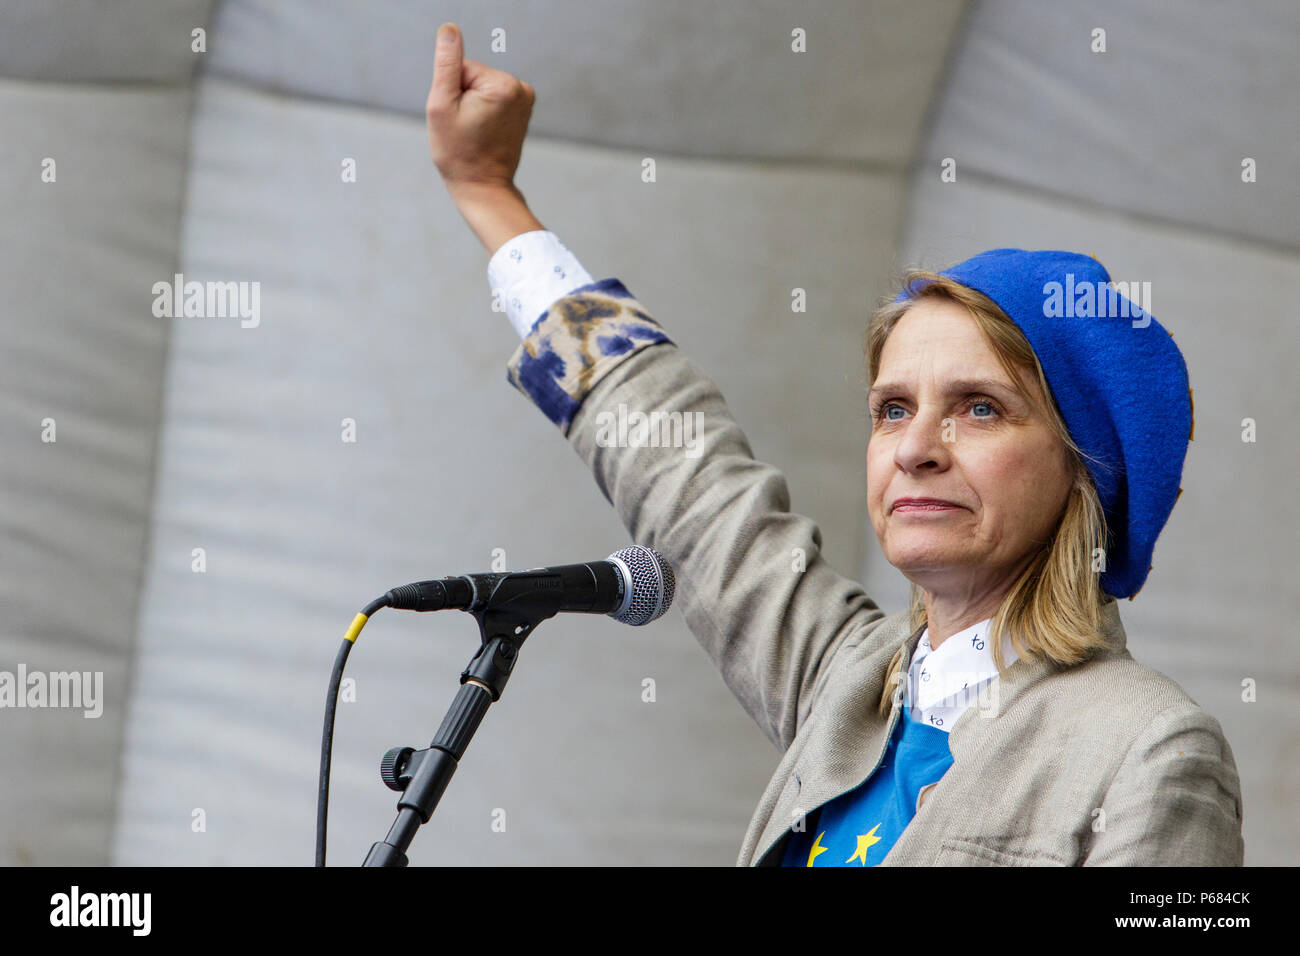 Wera Hobhouse the Liberal Democrat MP for Bath is pictured talking to Pro EU supporters at an anti Brexit protest march + rally in Bristol 14/10/2017 Stock Photo